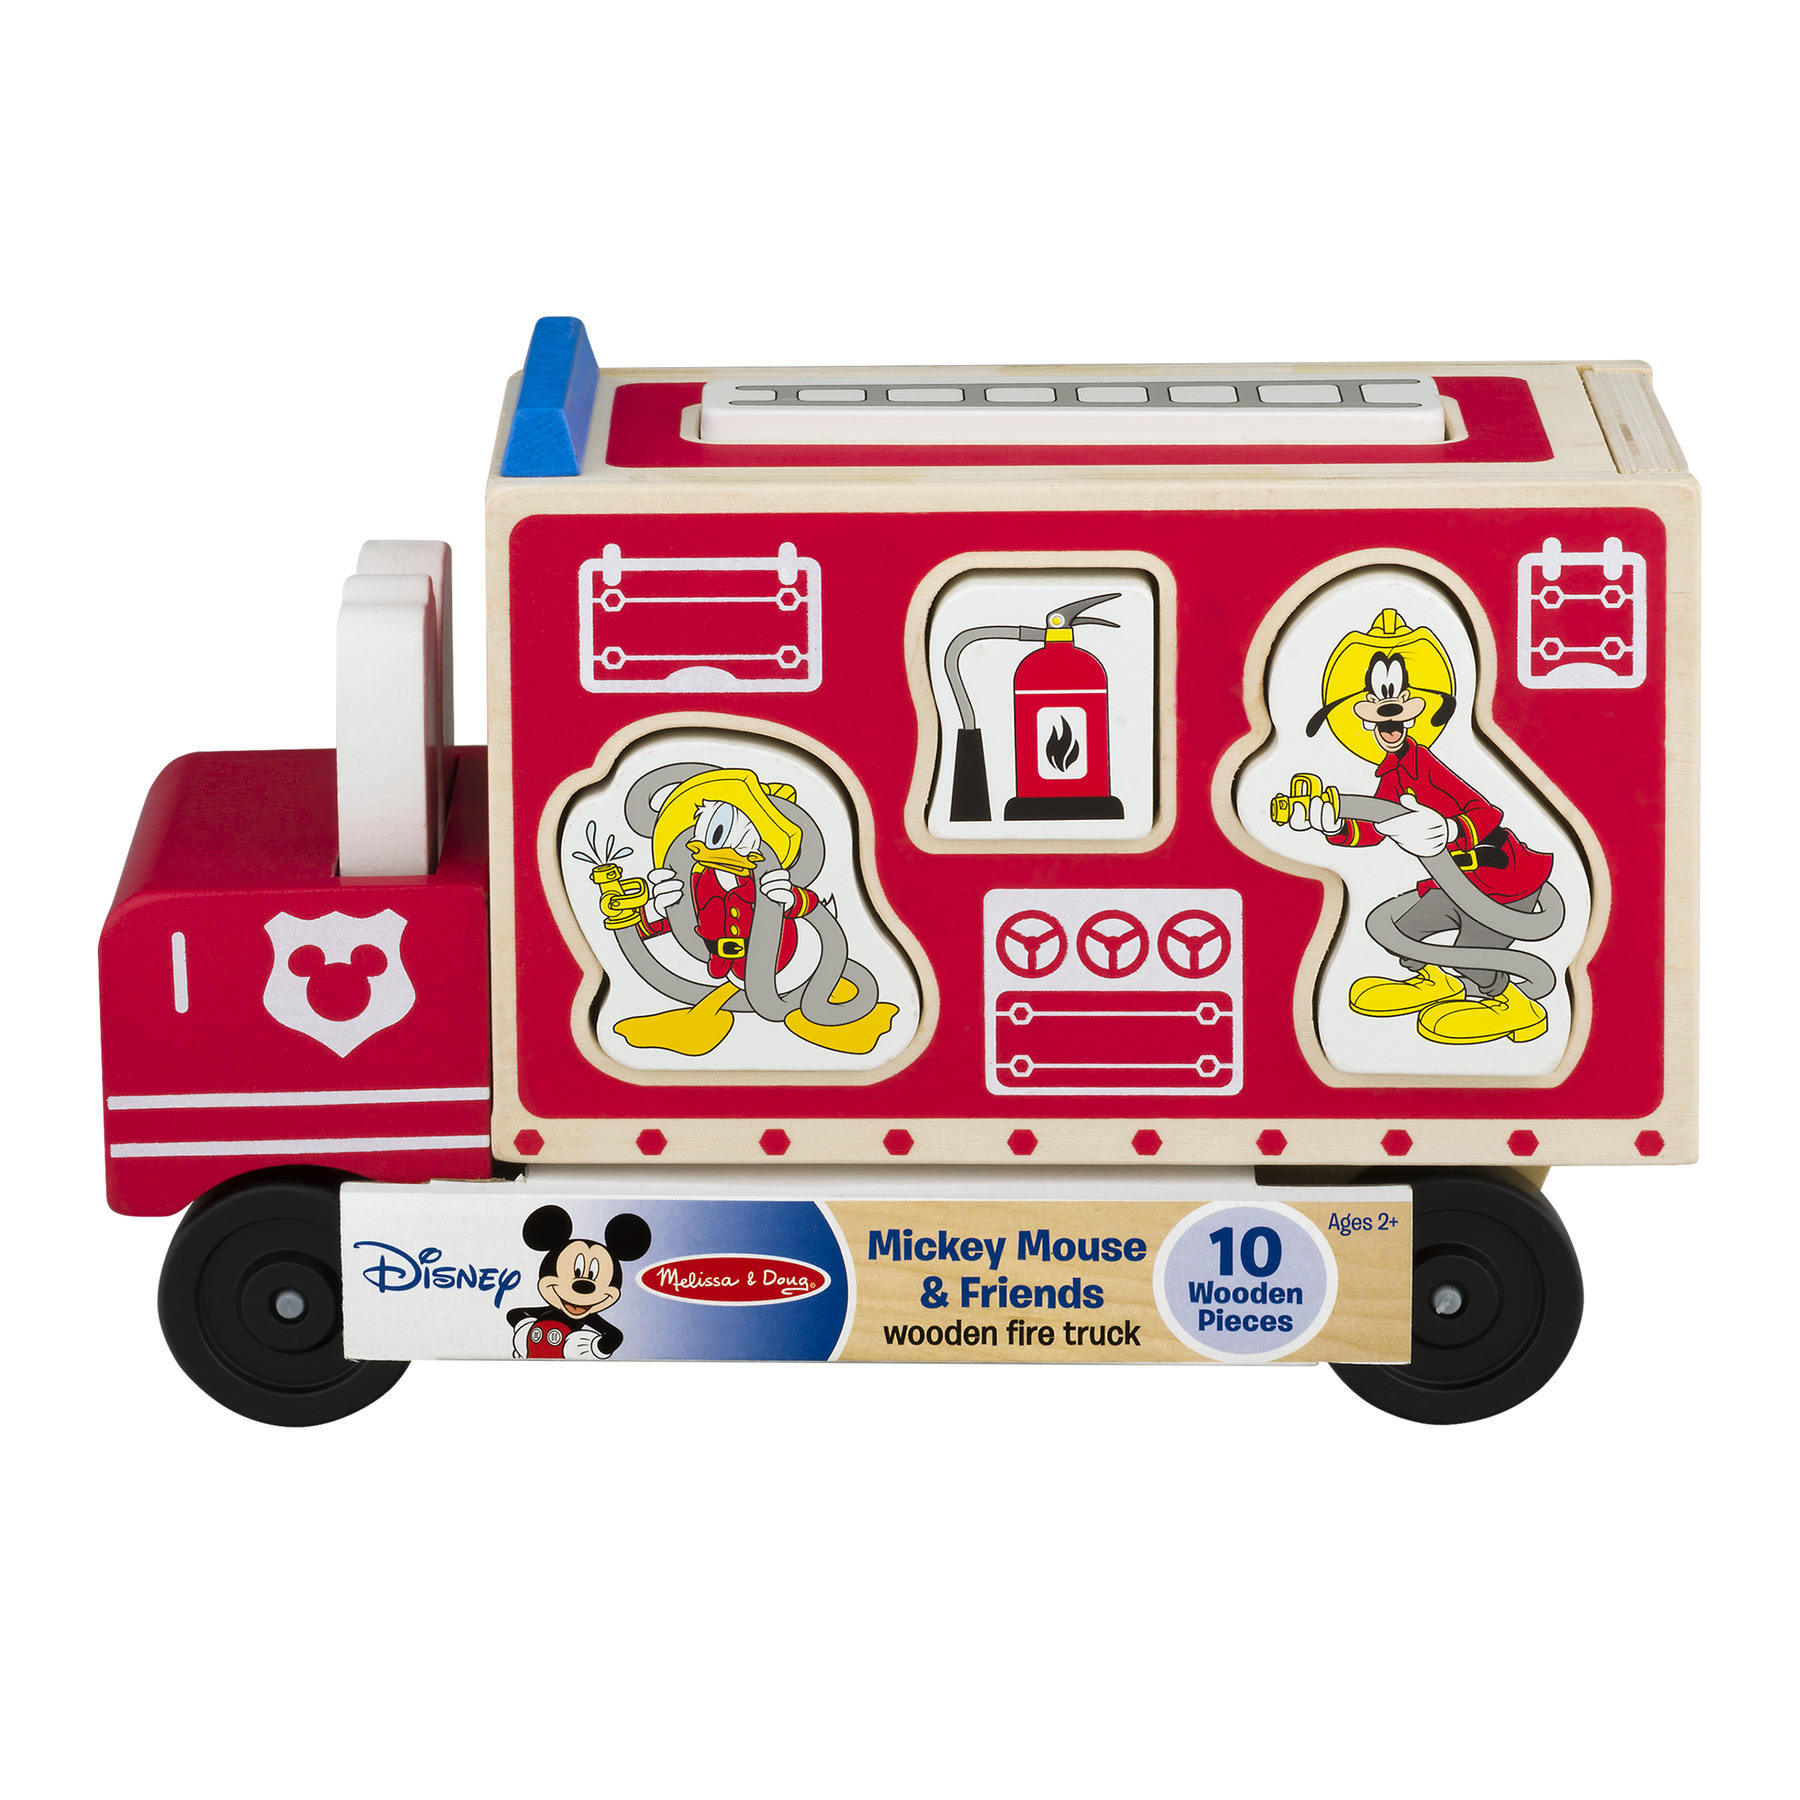 Disney Baby Mickey Mouse & Friends Wooden Fire Truck, 10.0 PIECE(S)